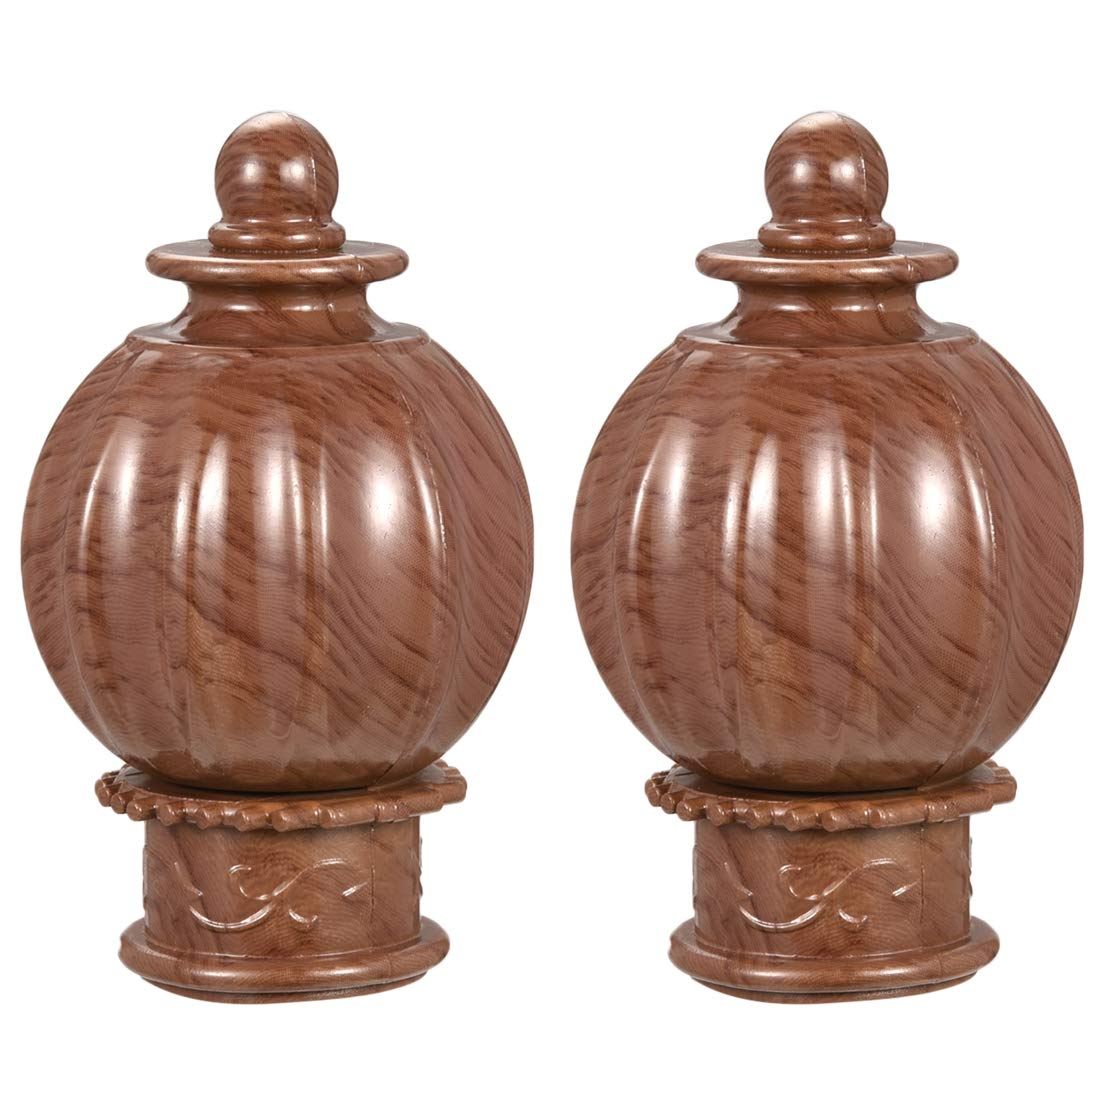 uxcell Curtain Rod Cap Finials Plastic Vintage Style Drapery Rail Ends for 28mm Dia Rod Wood Color 63 x 107mm 2 Pcs